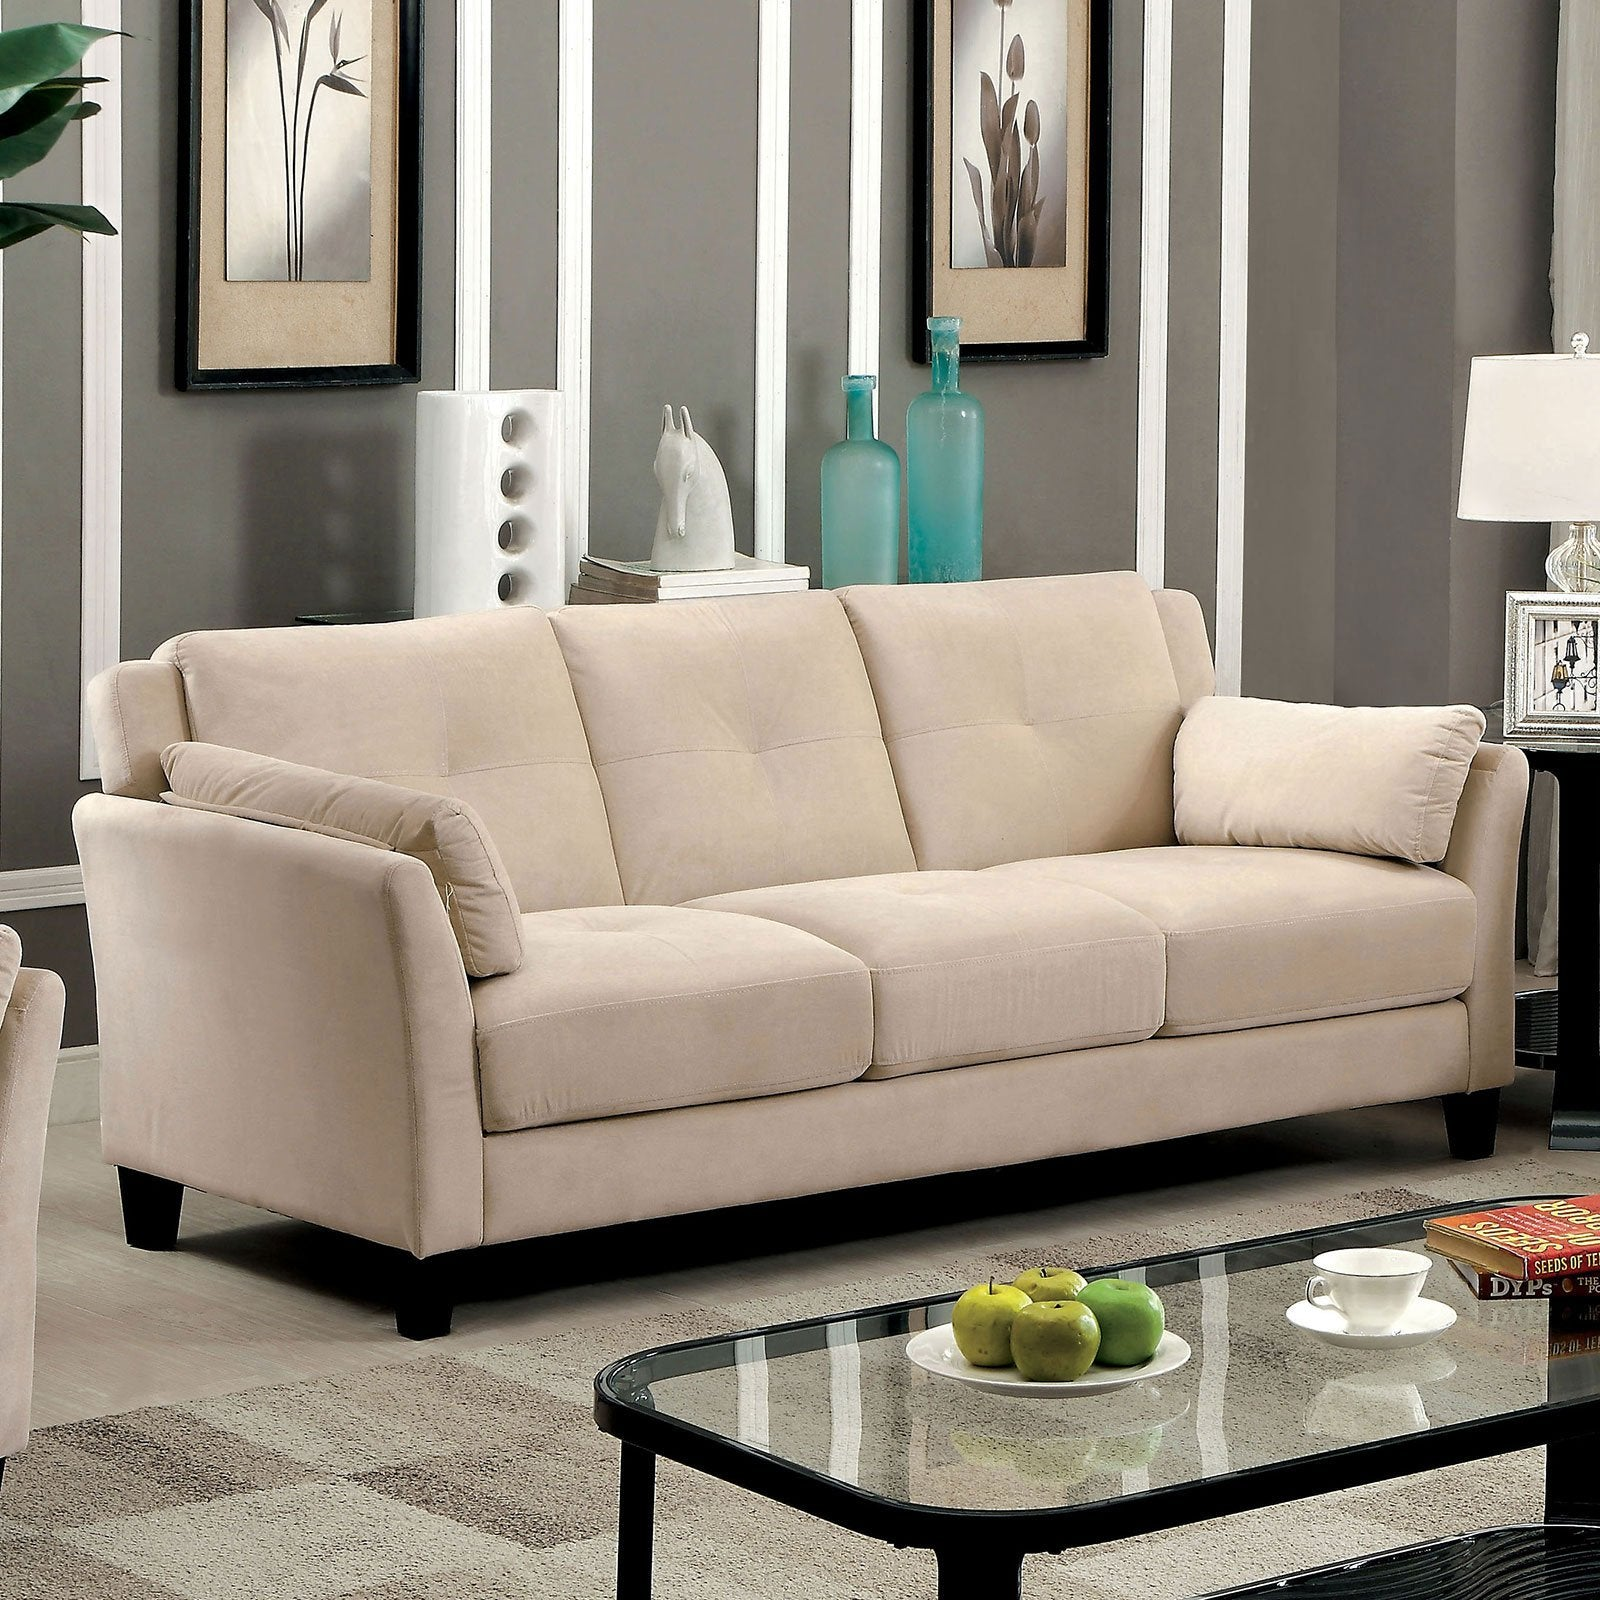 YSABEL Contemporary Sofa, Beige (K-D) - InteriorDesignsToGo.com